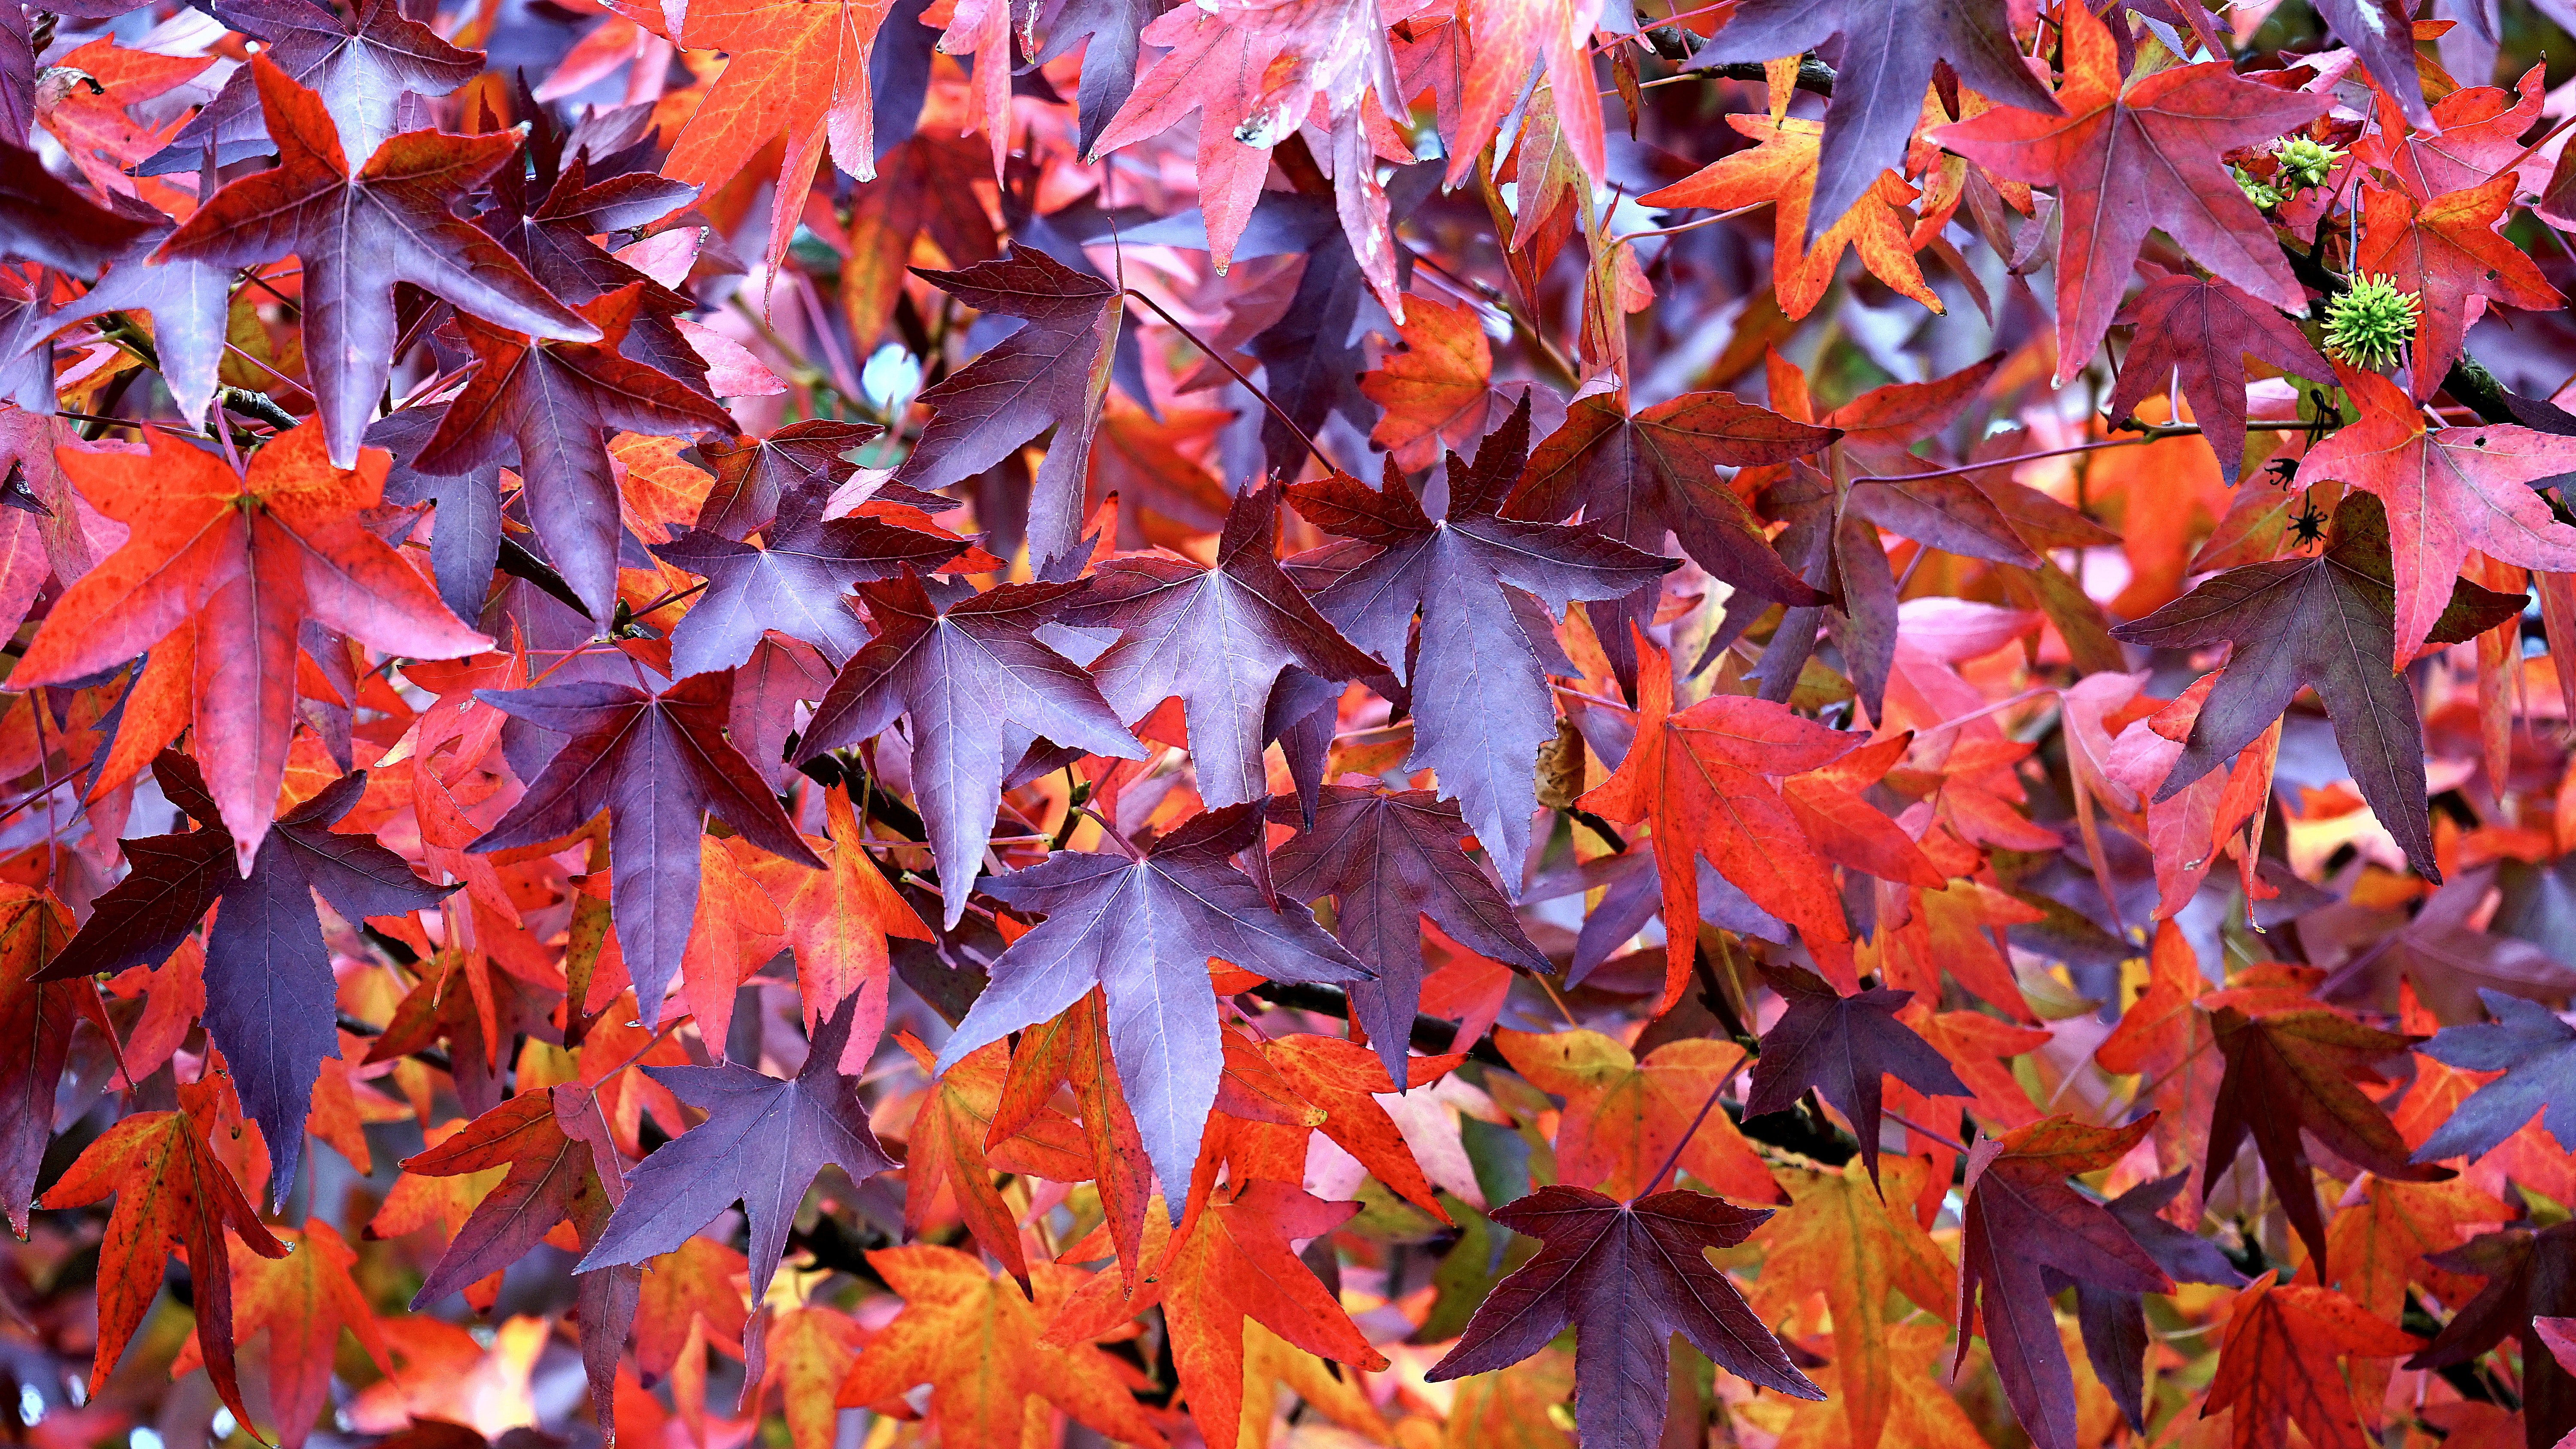 Maroon and red leaf in close up photography